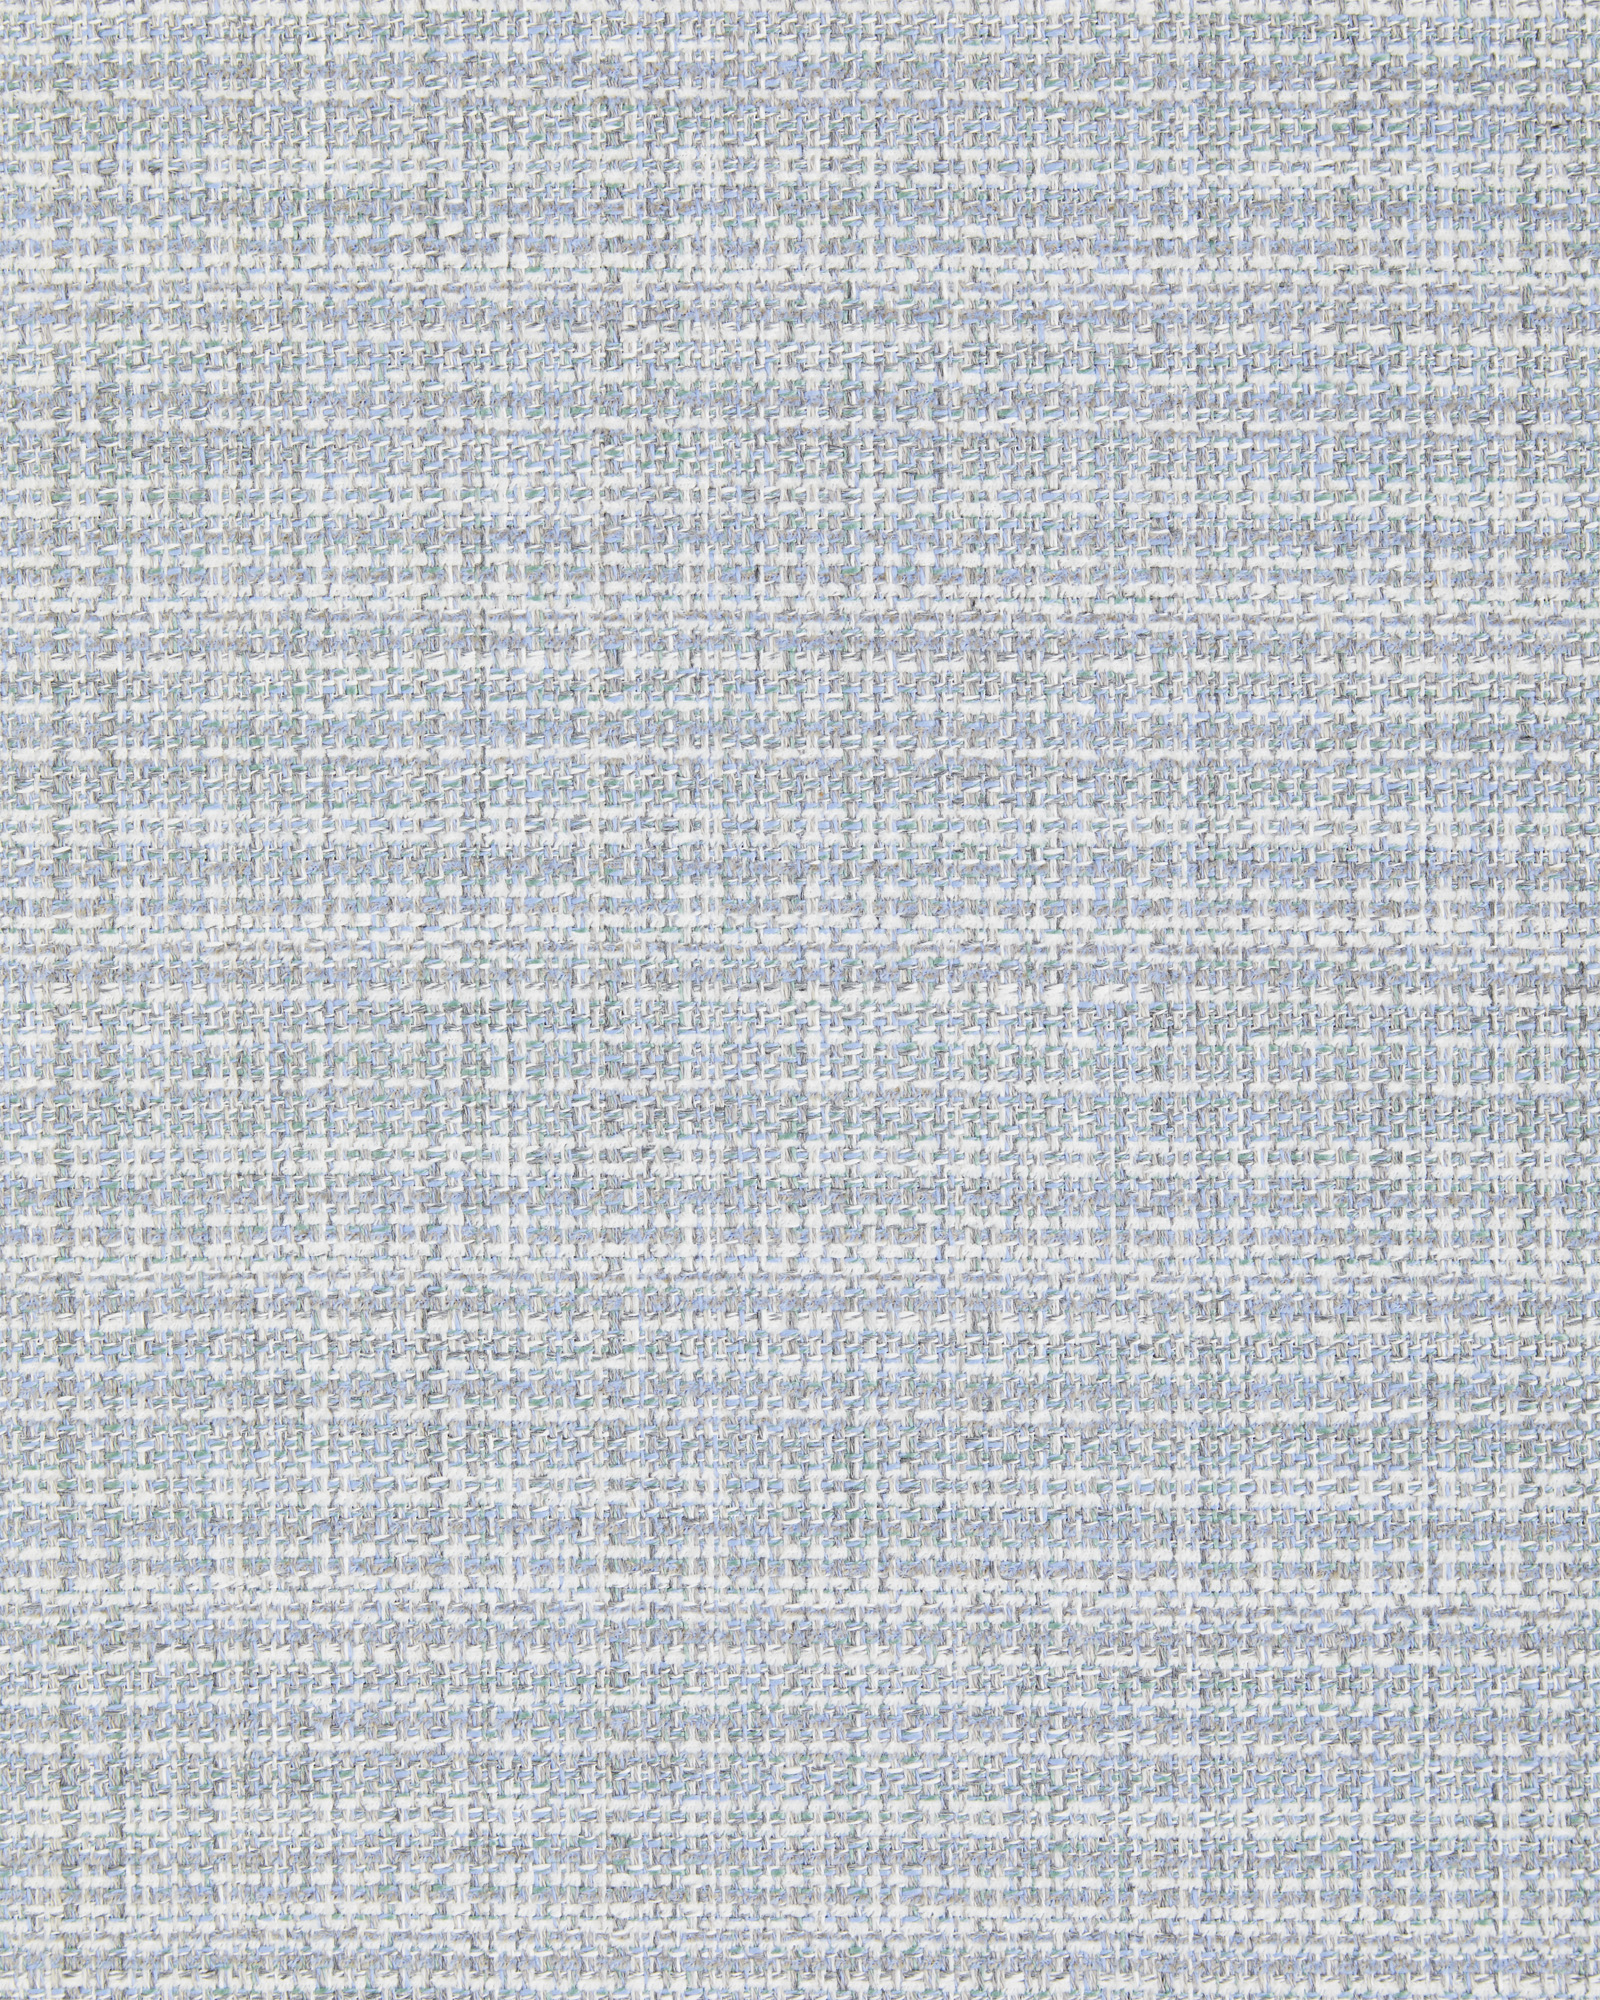 Fabric by the Yard - Perennials® Rosemount, Coastal Blue